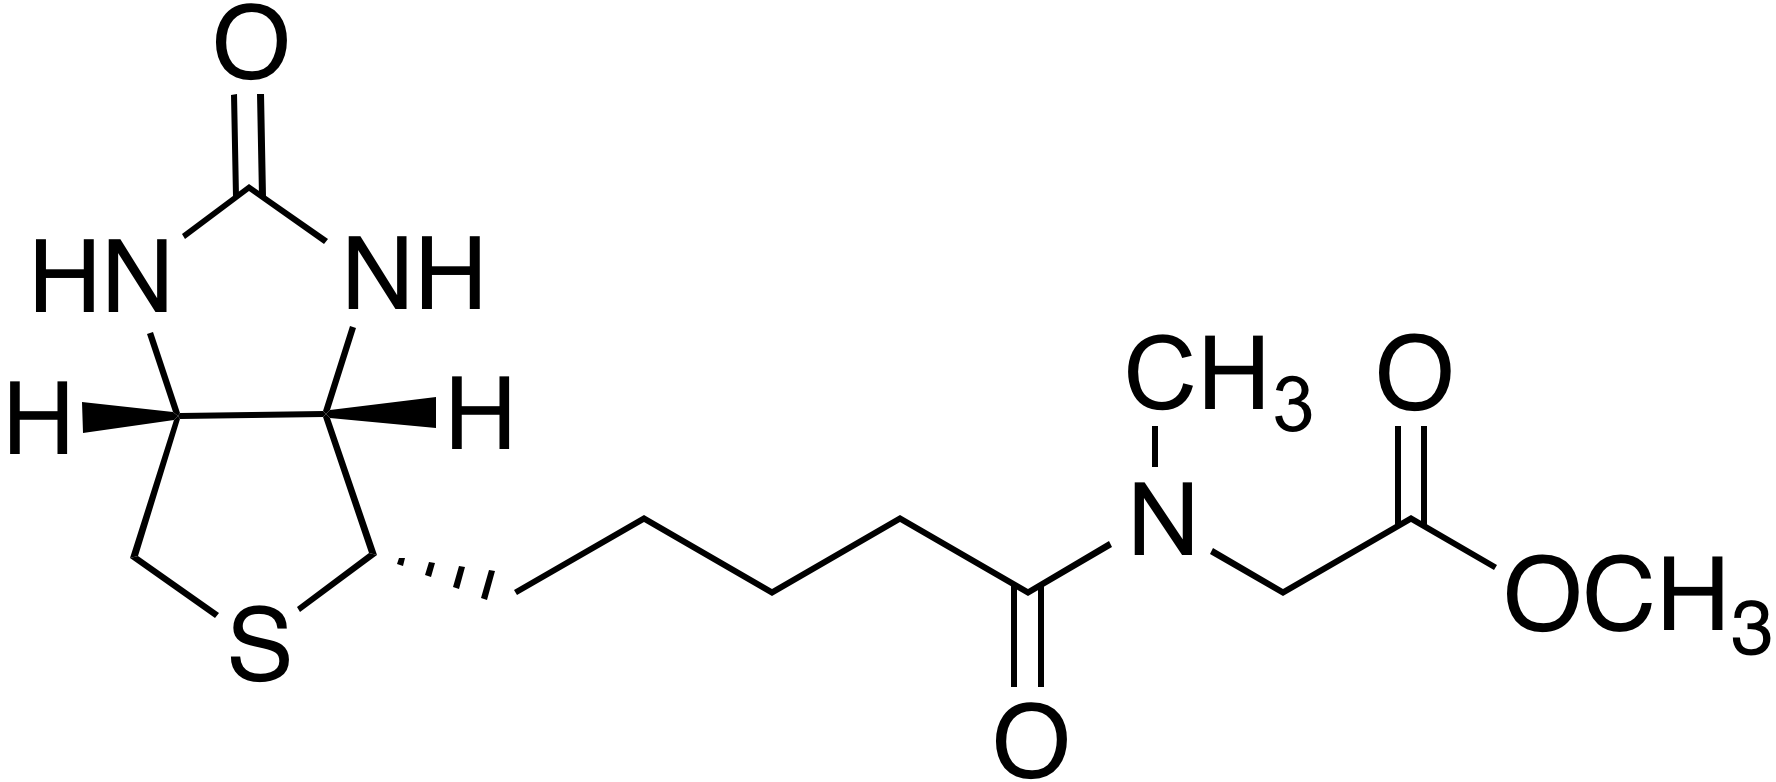 N-Methyl-N-biotinyl glycine methyl ester